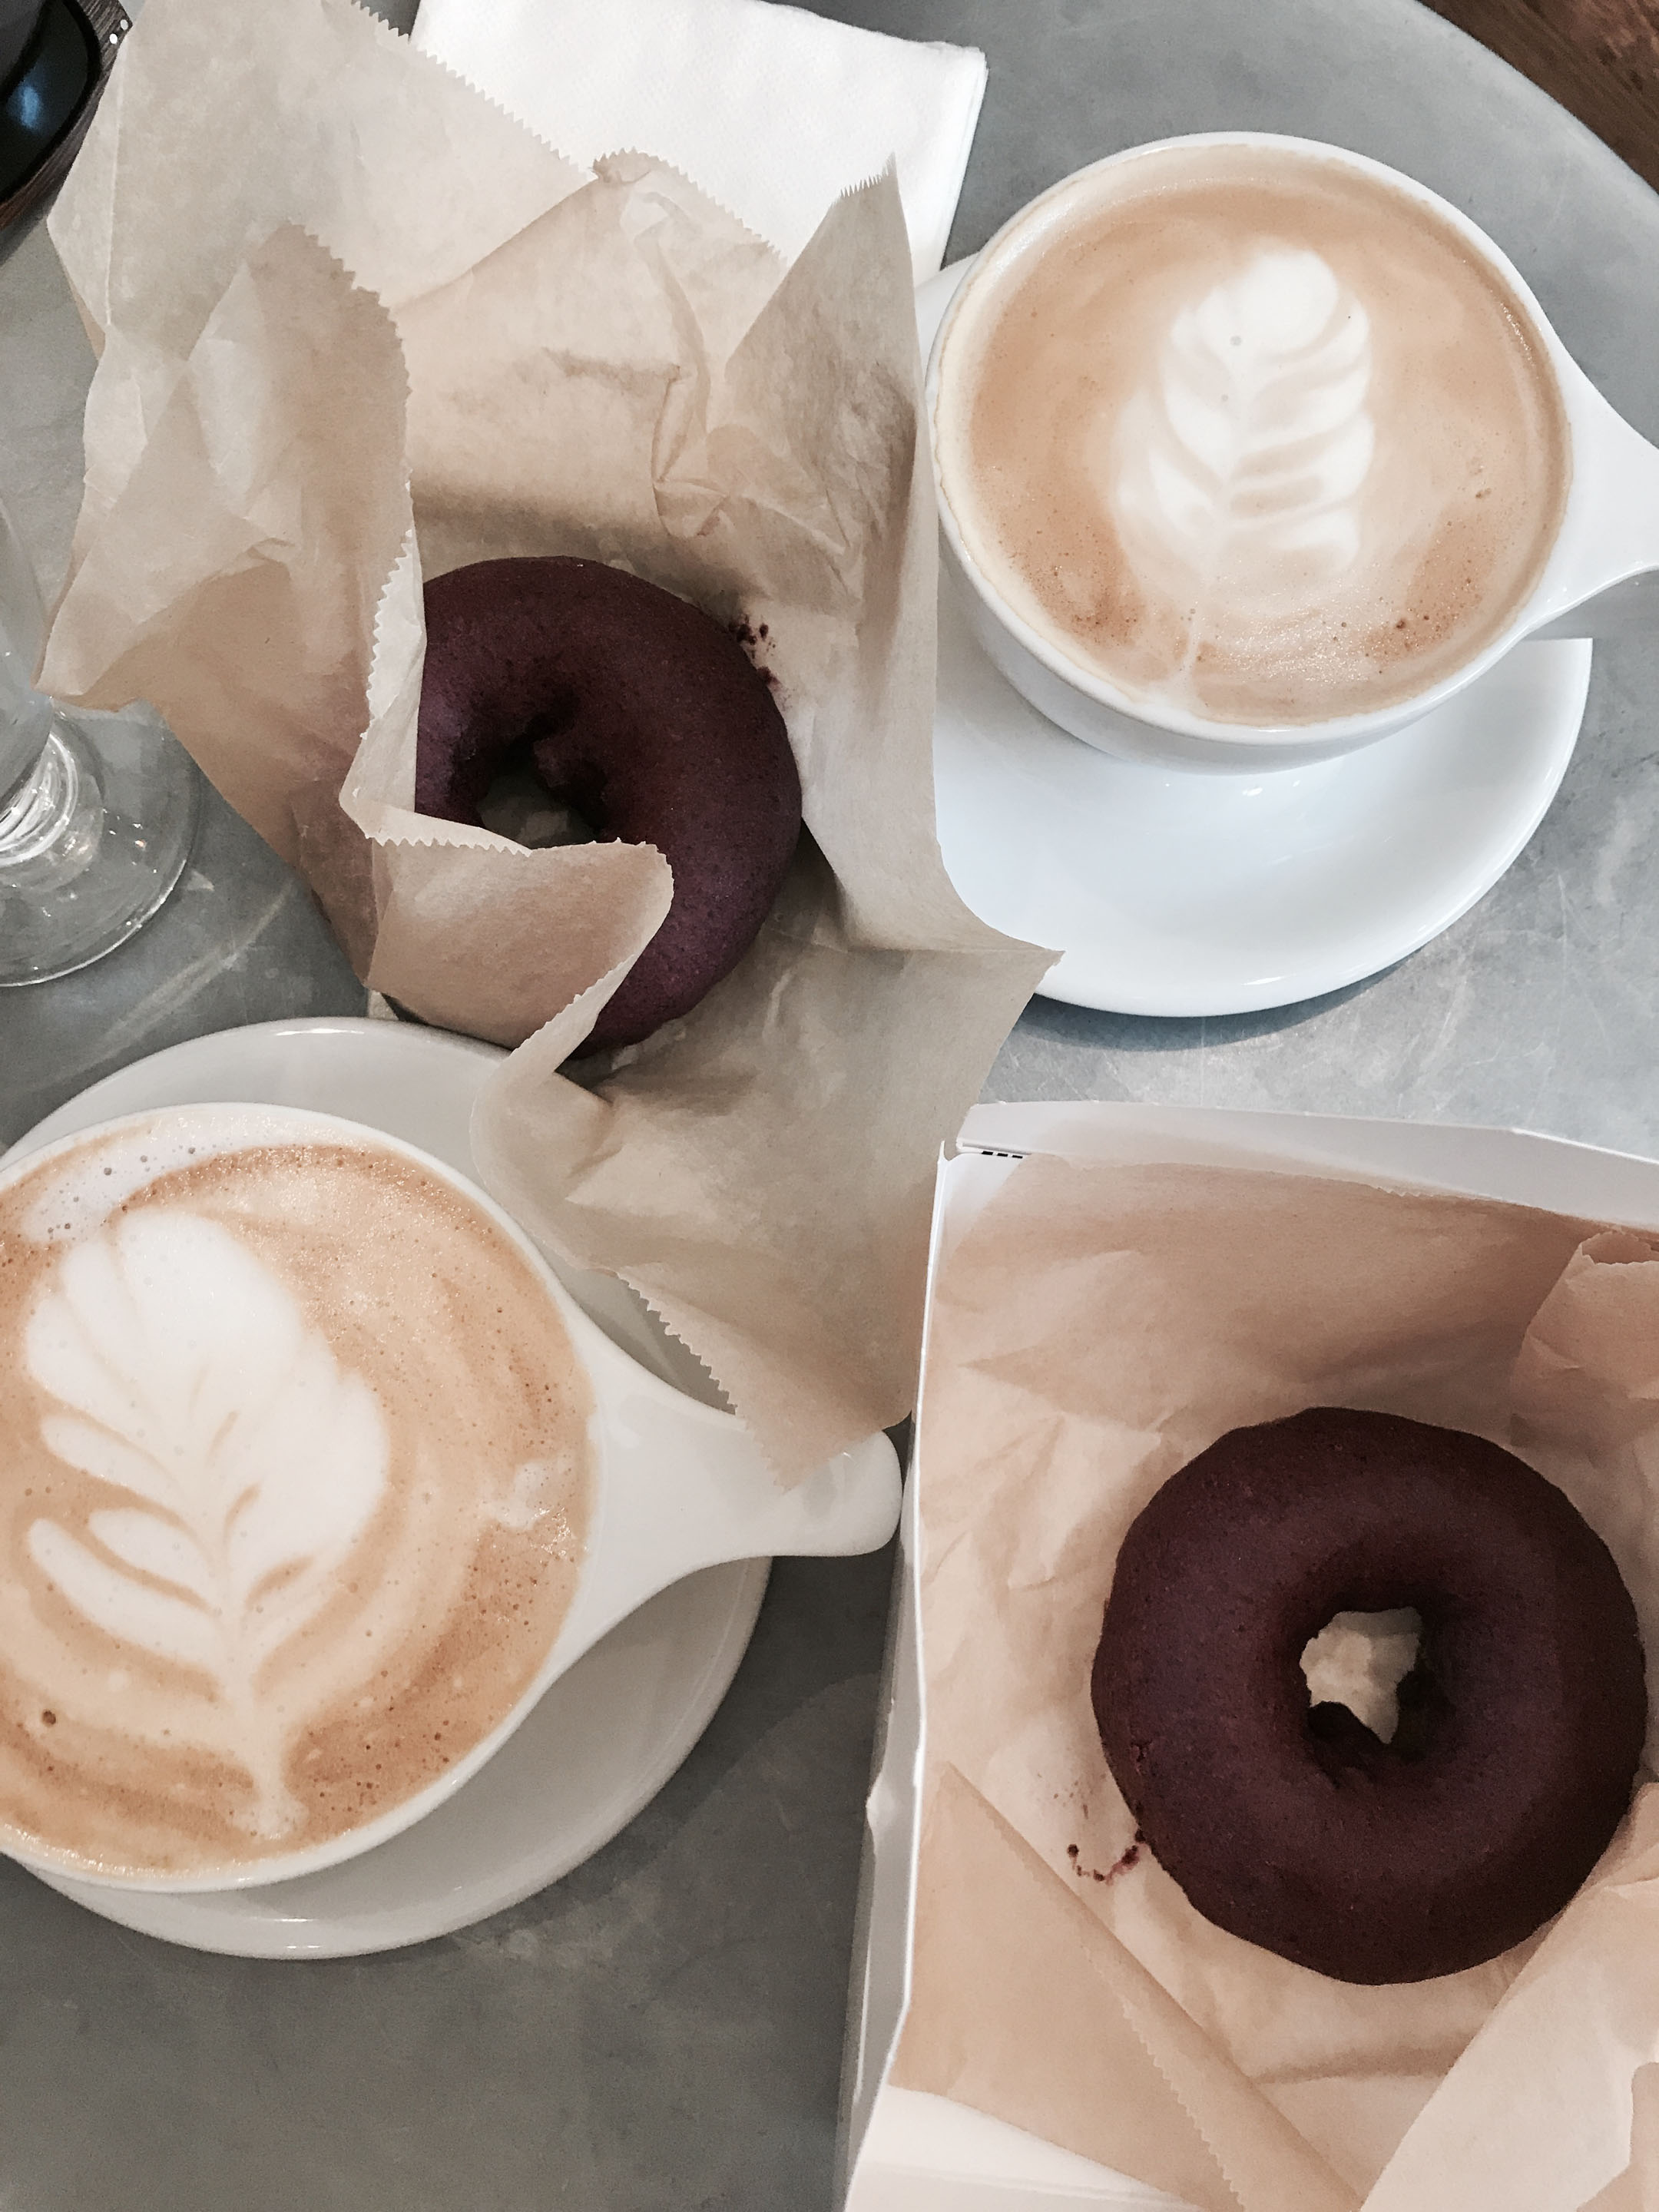 Blue Star Vegan donuts